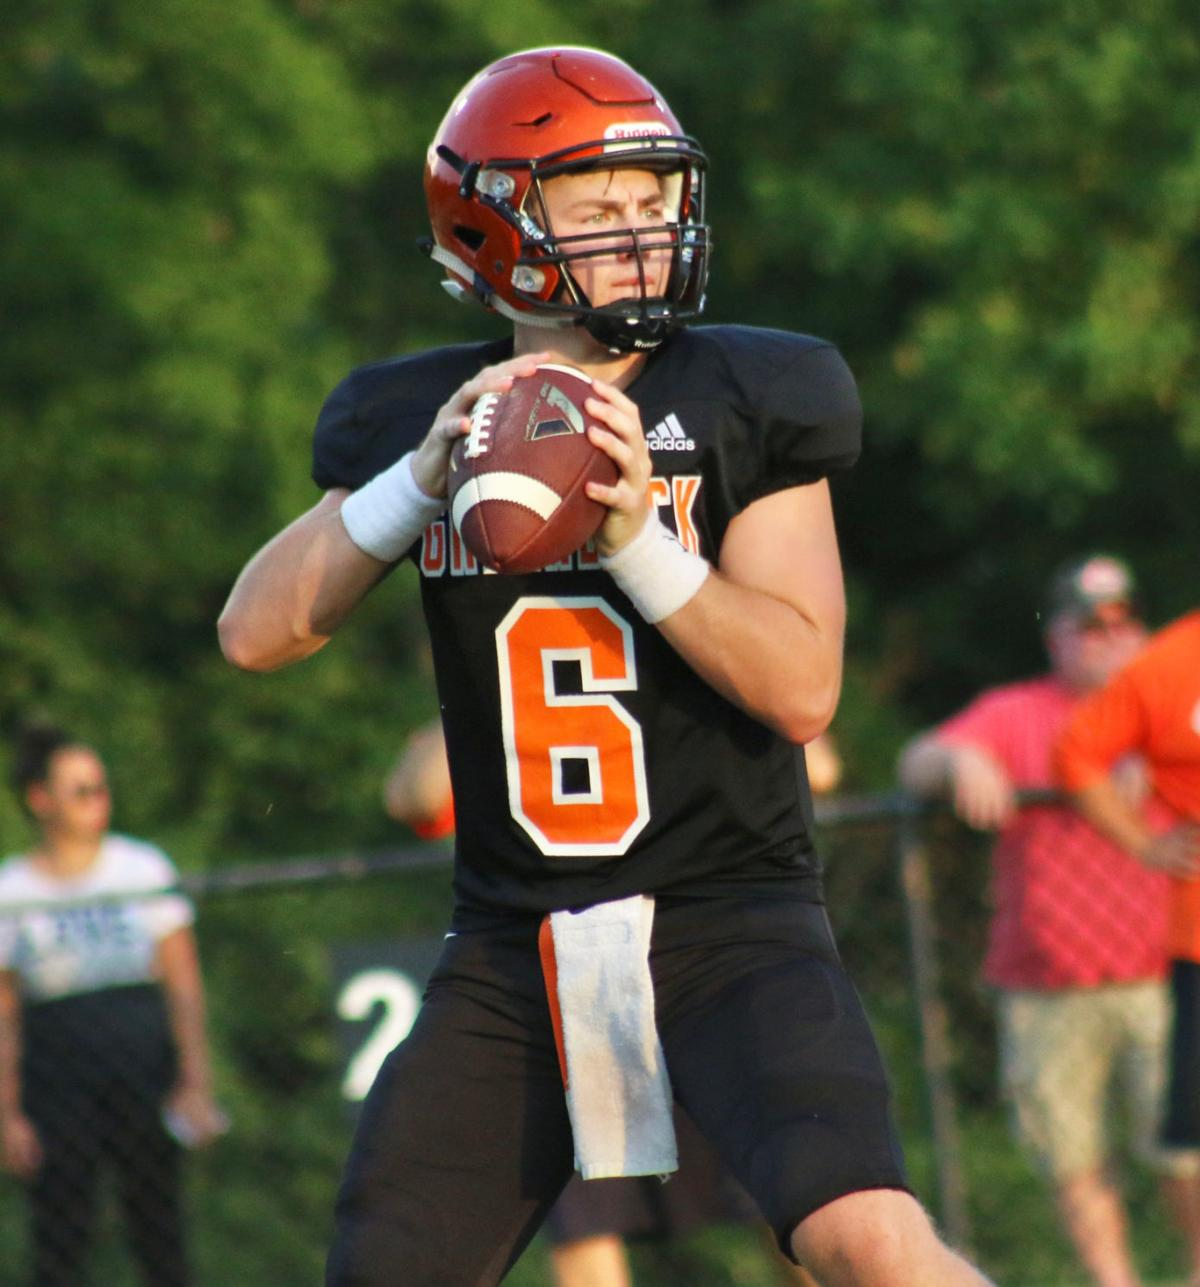 Cherokees continue to roll in preseason